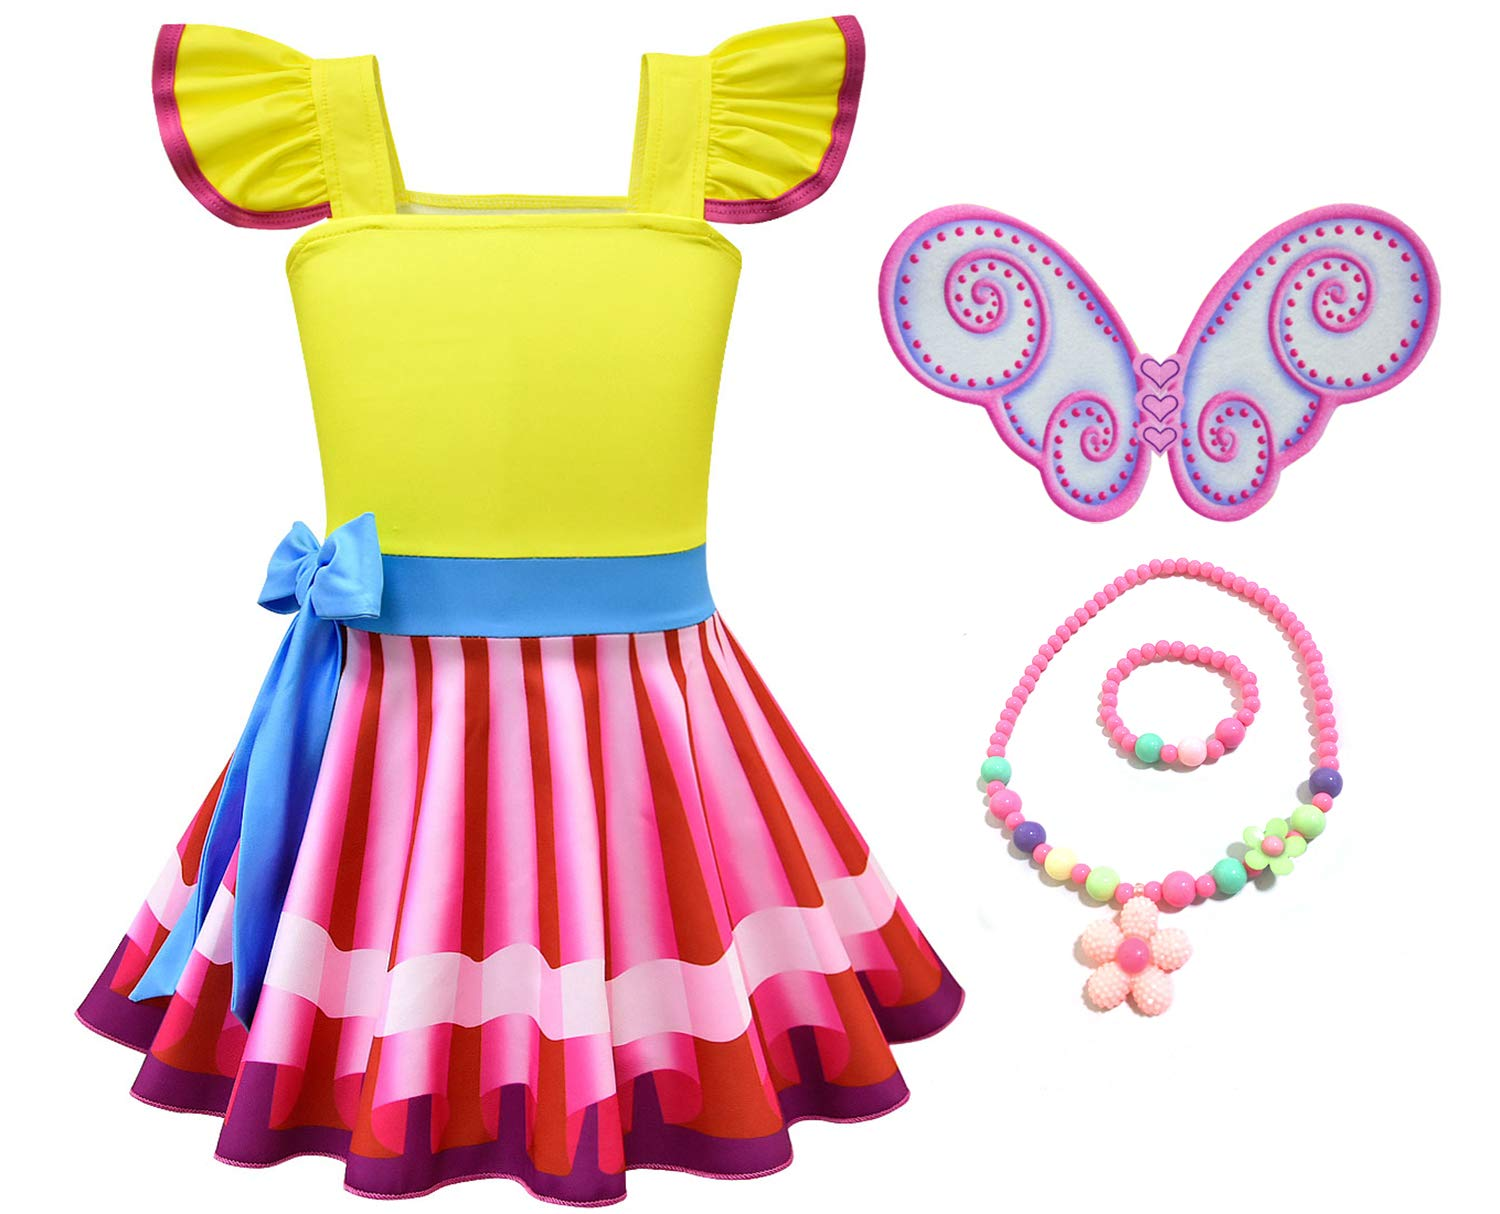 Mssmile Fancy Nancy Costume For Girls Nancy Dress Buy Online In Dominica At Dominica Desertcart Com Productid 137332052